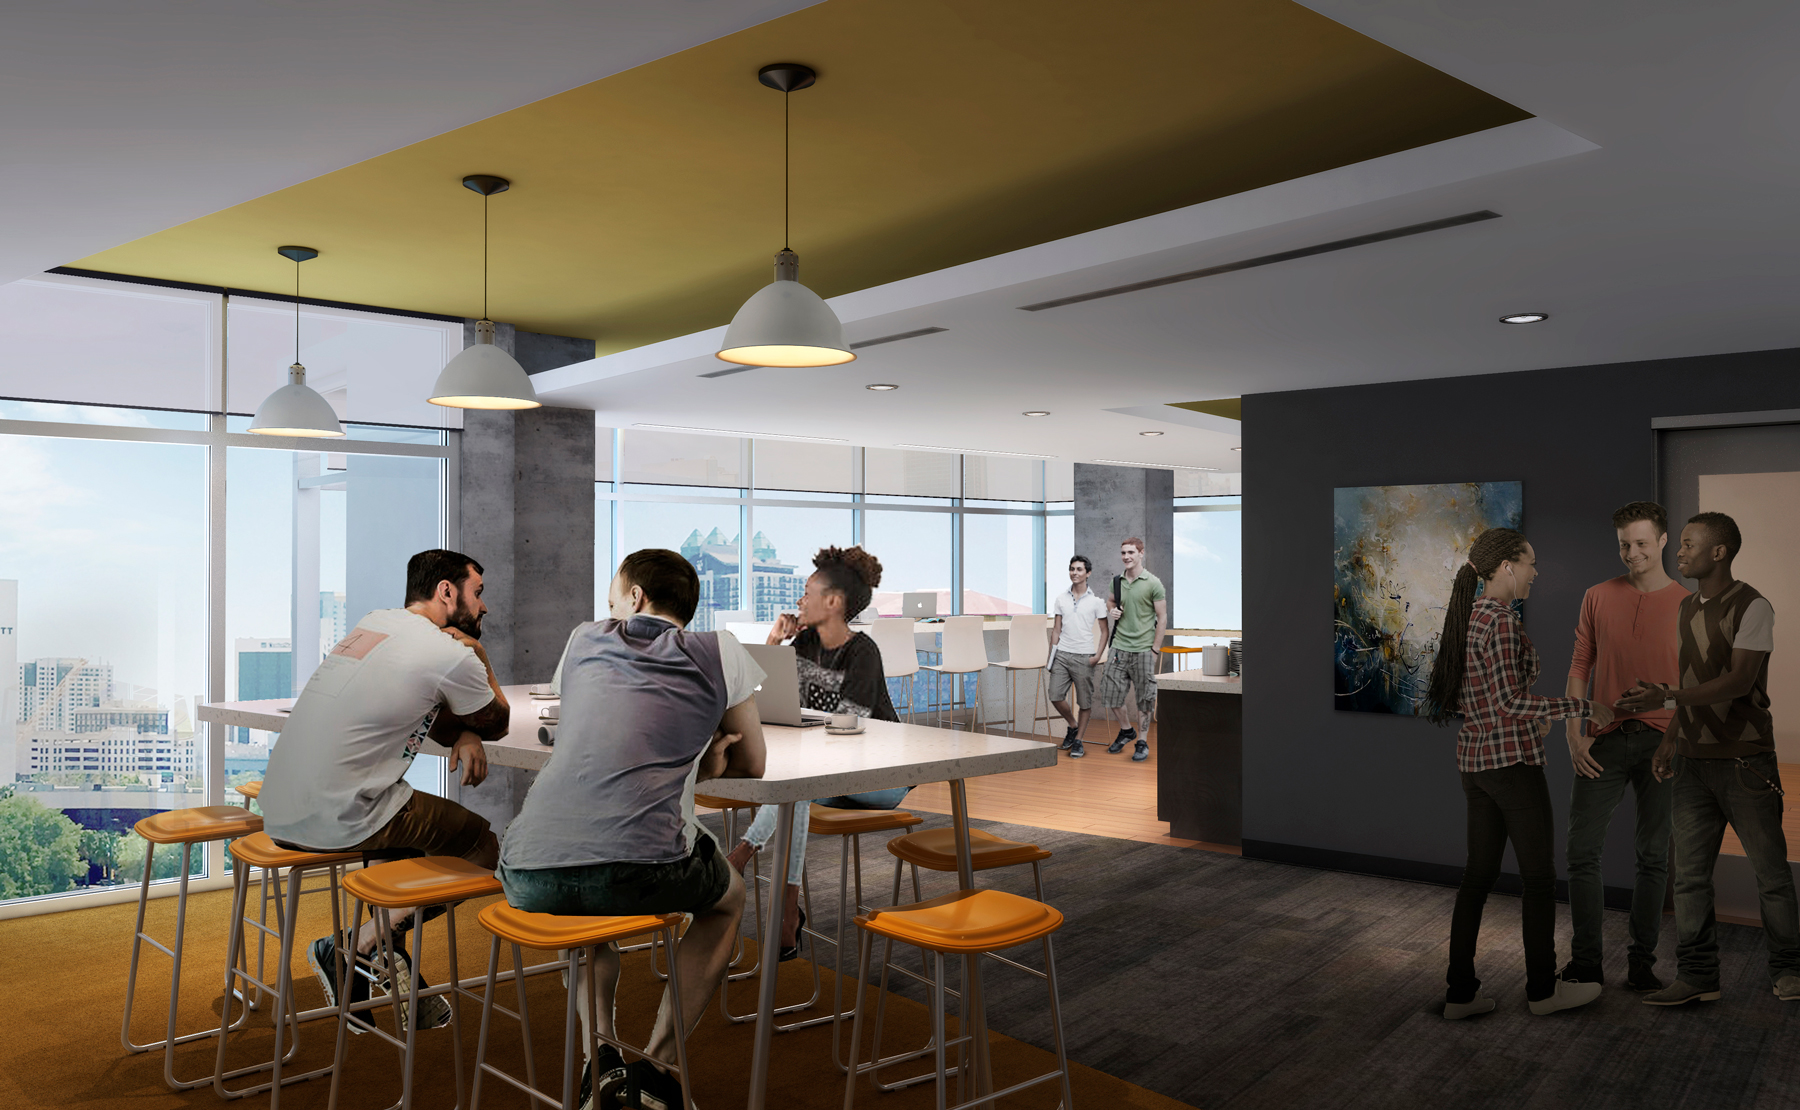 Each floor of the residences also features a resident-only club room with lounges, a coffee bar and space for community activities.